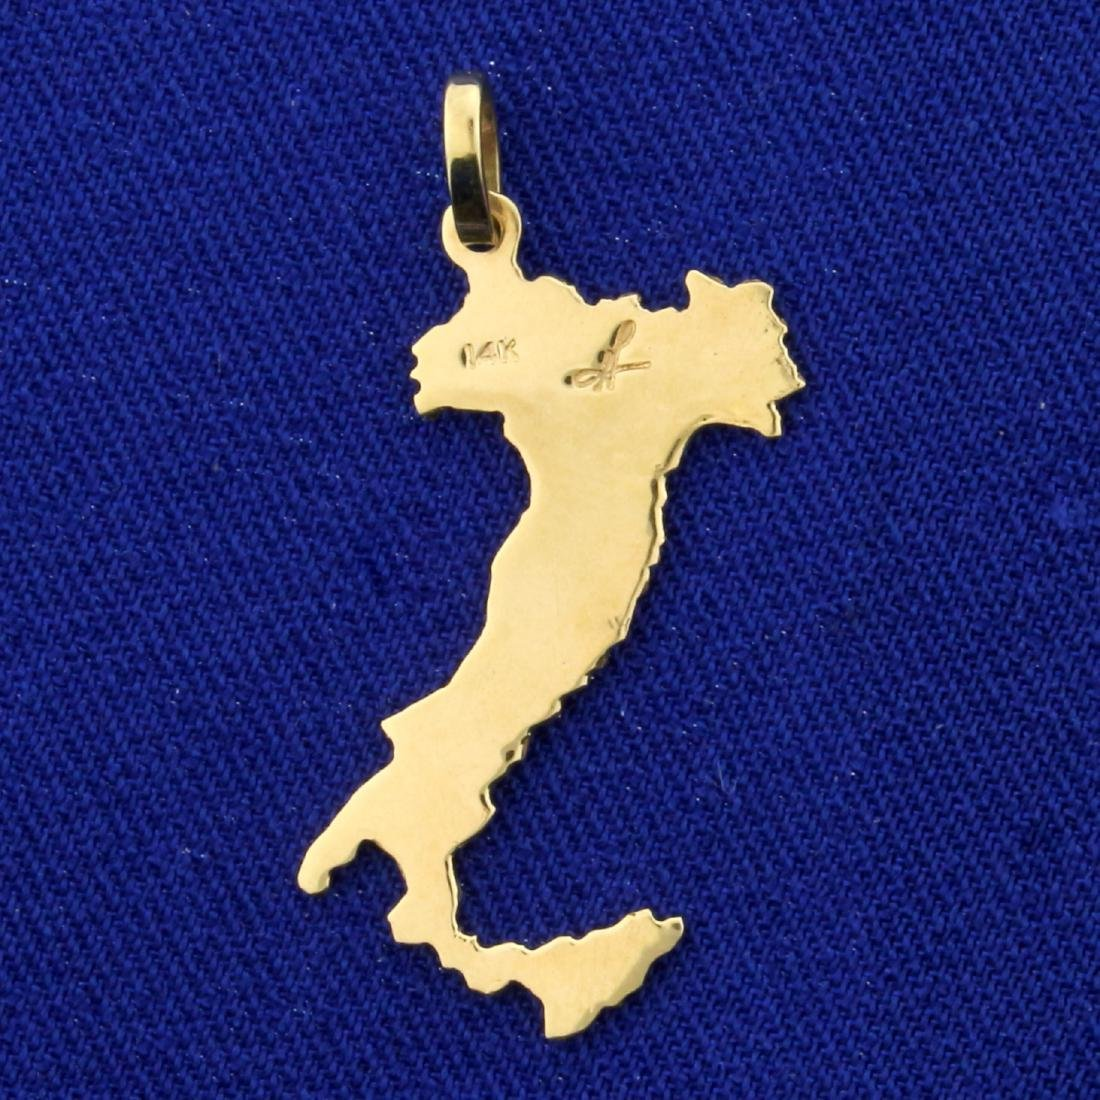 Provinces of Italy Pendant or Charm in 14K Yellow Gold - 2